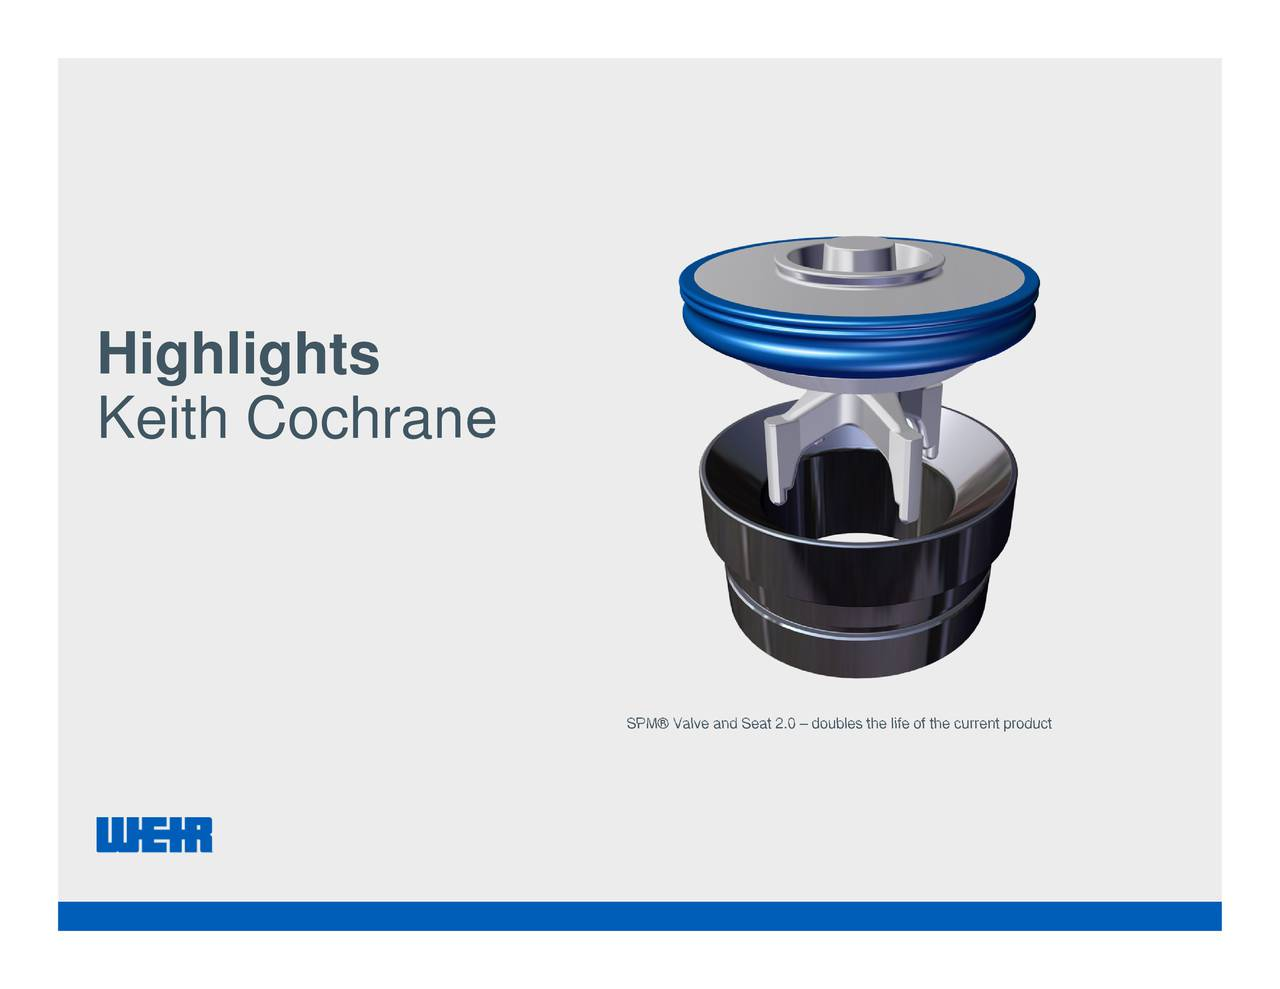 SPM Valve and Seat 2.0  doubles the life of the cu HigKeithhtochrane